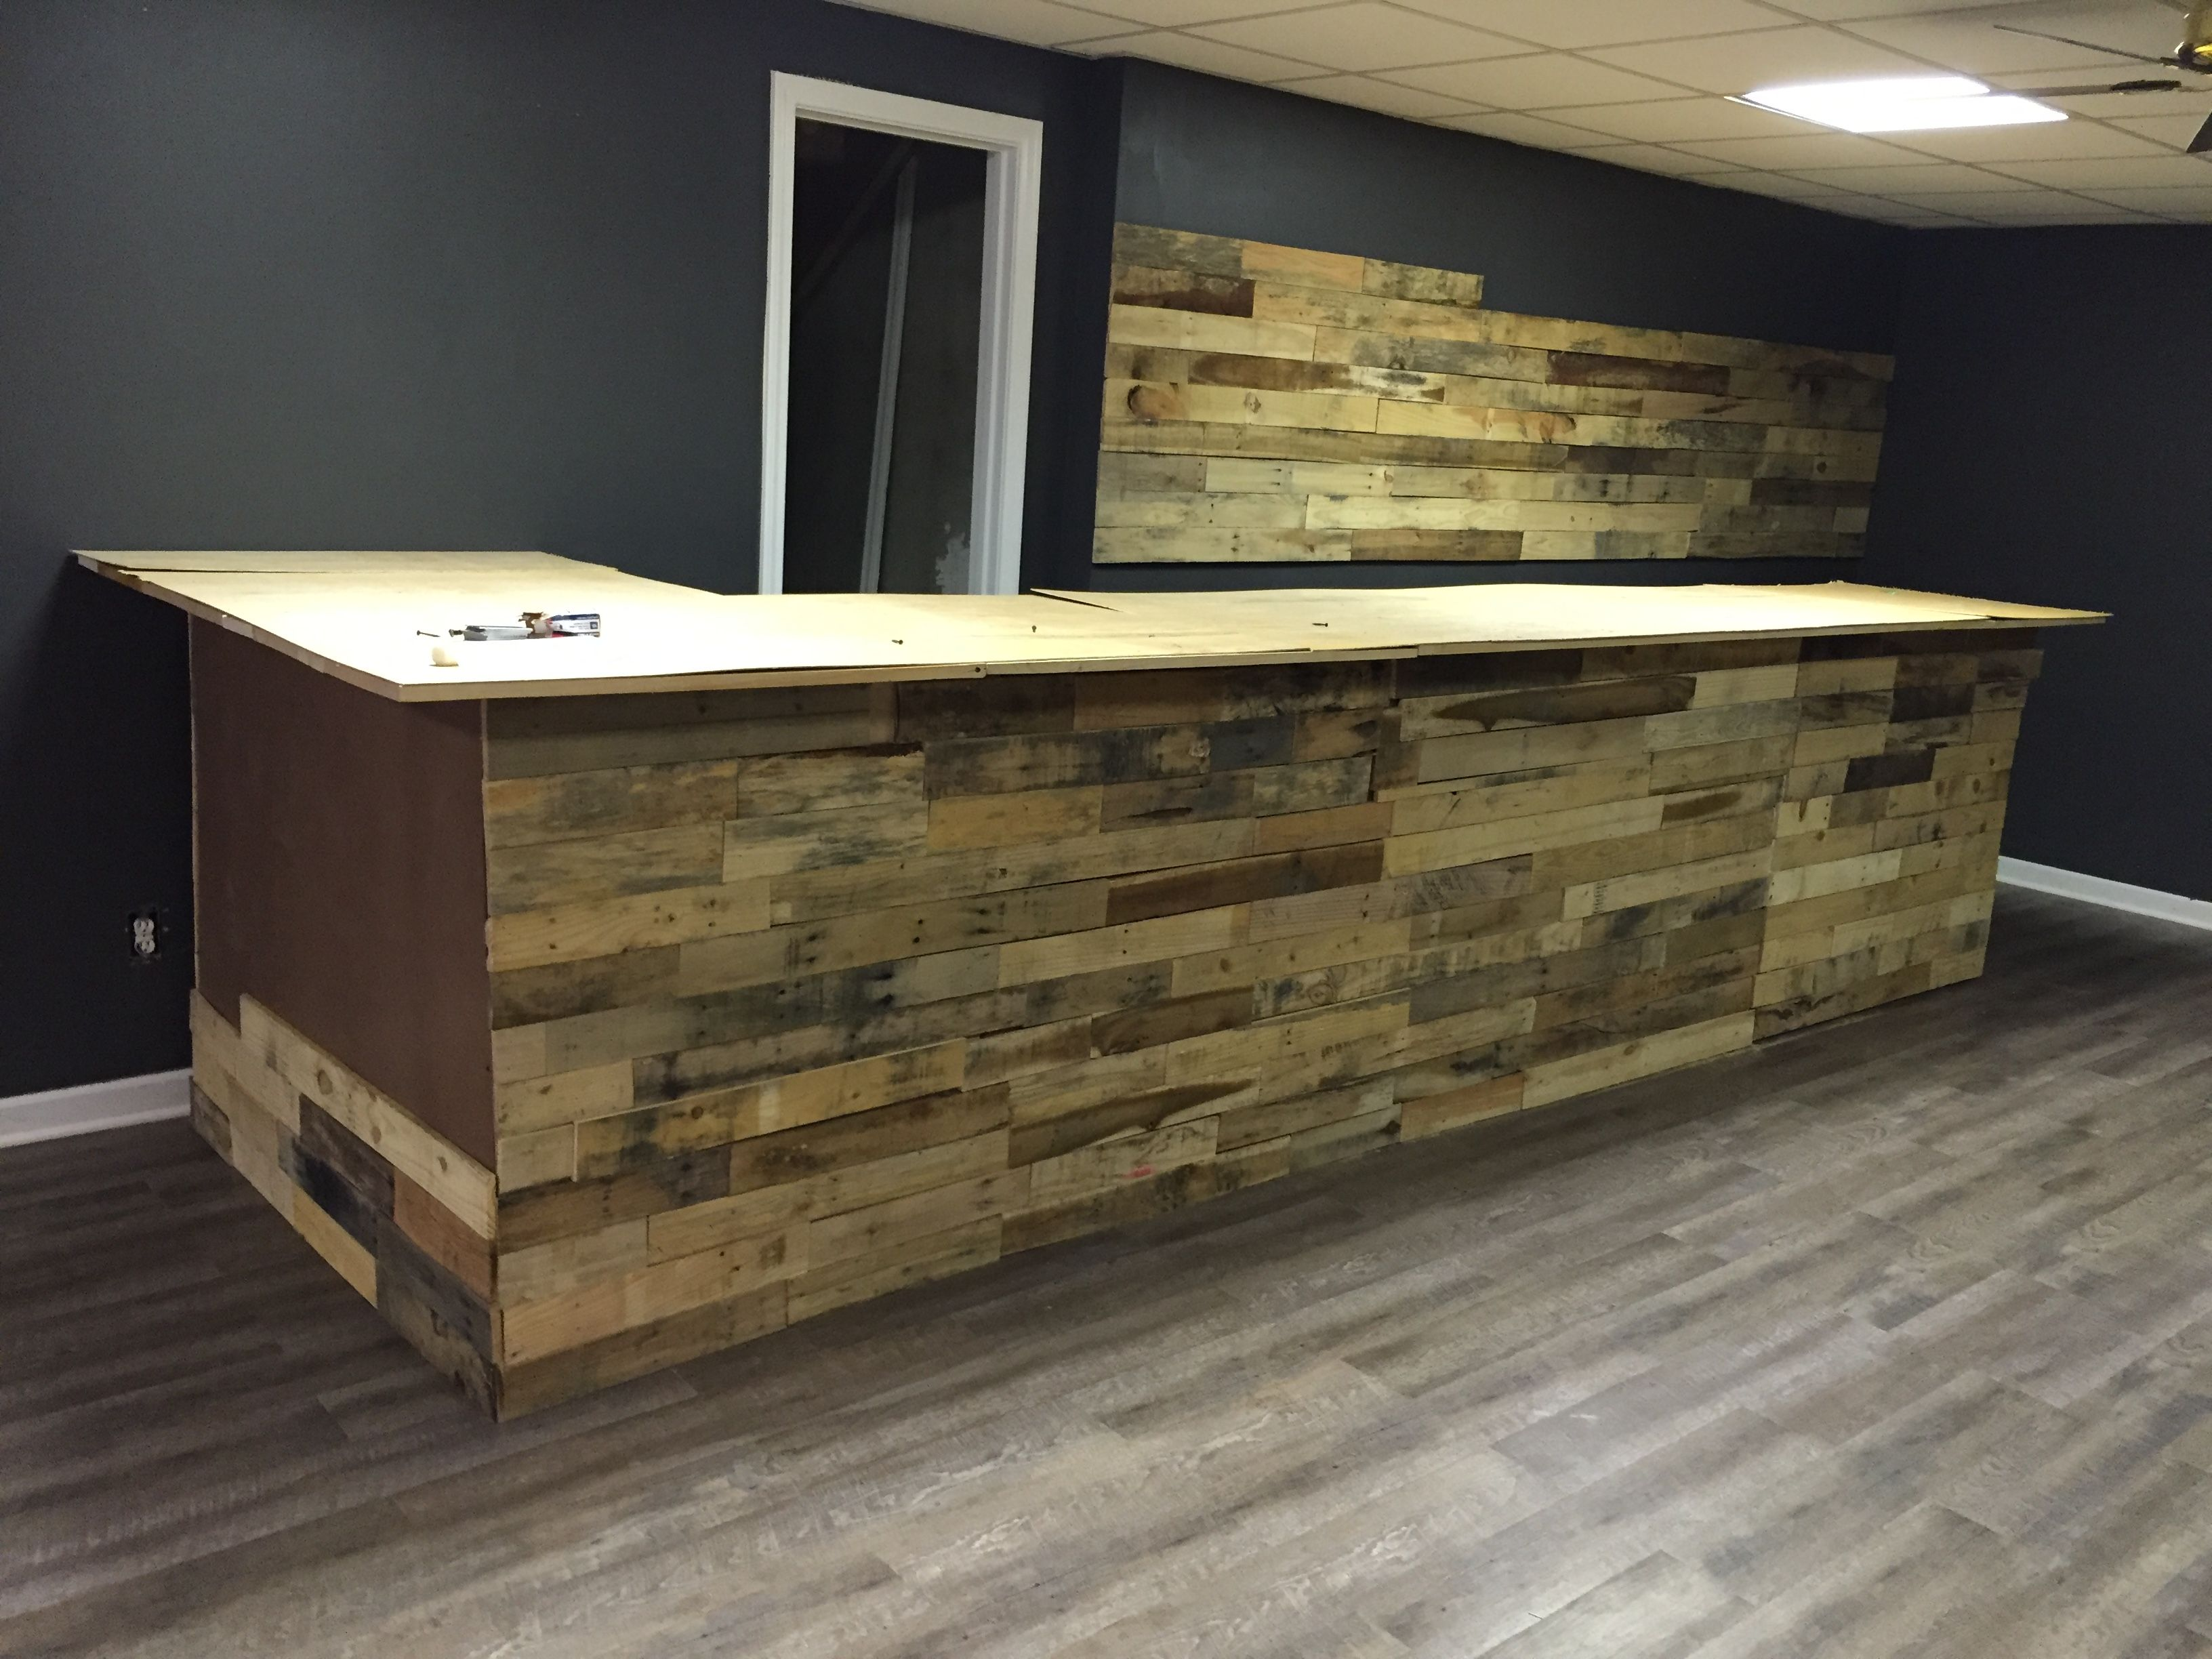 16ft Reclaimed Pallet Wood Bar Makes For The Ultimate Man